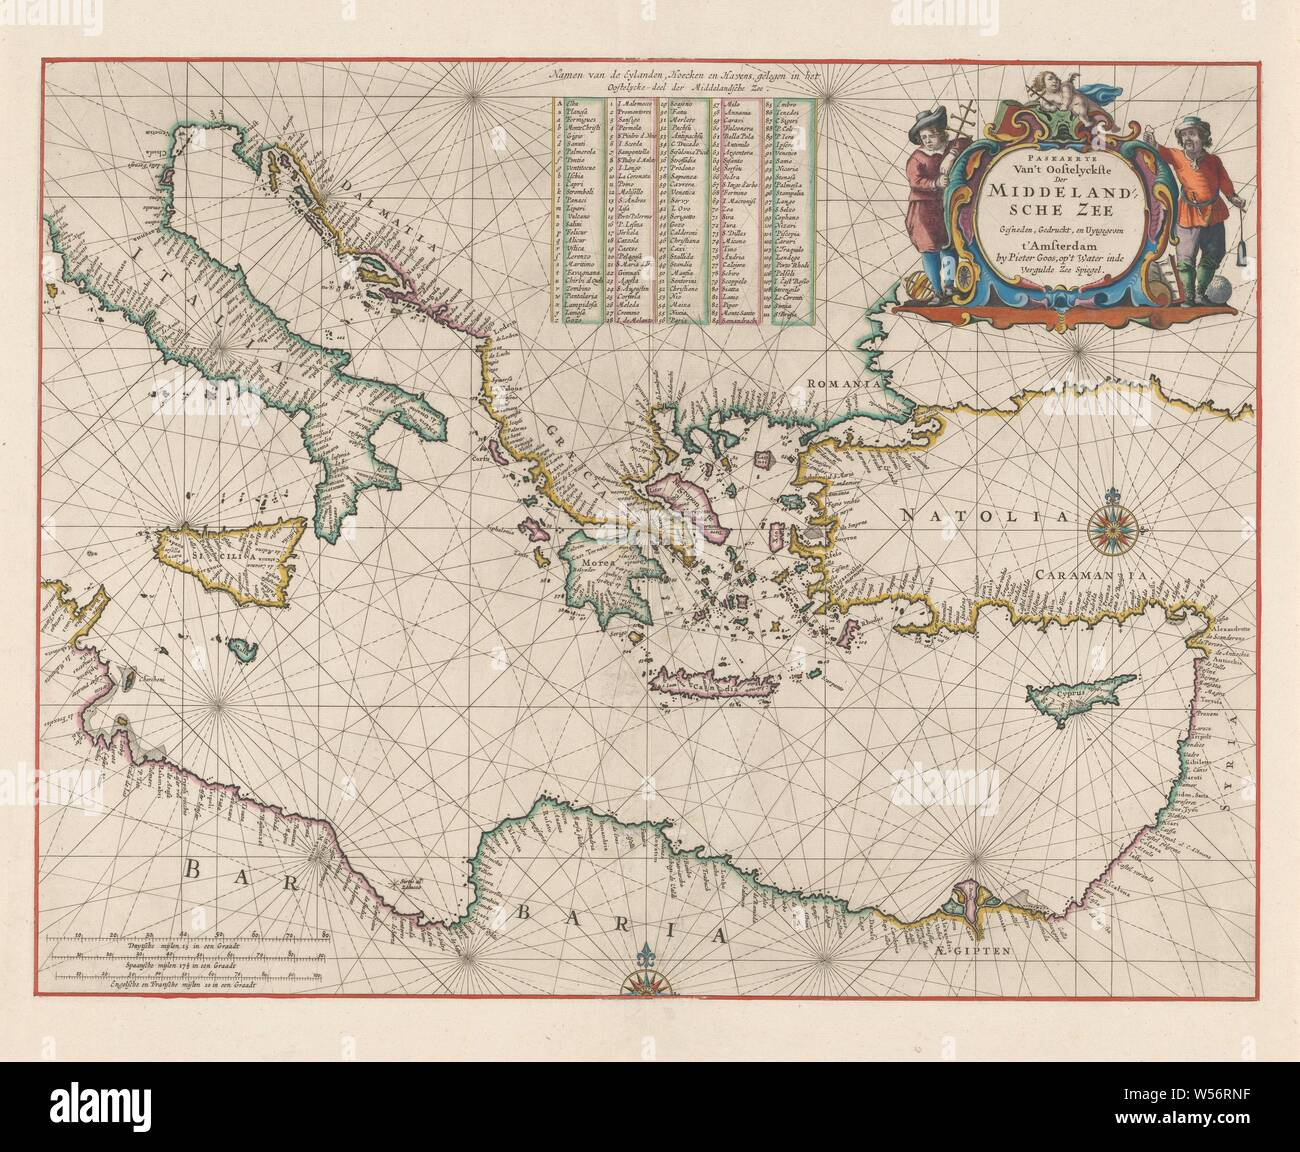 Cartography In The Netherlands Nautical Chart Of The Eastern Part Of The Mediterranean Nautical Chart Of Northern Italy To Syria Bordered In Red Coasts Colored Inscription R B Flanked By Allegorical Figures And